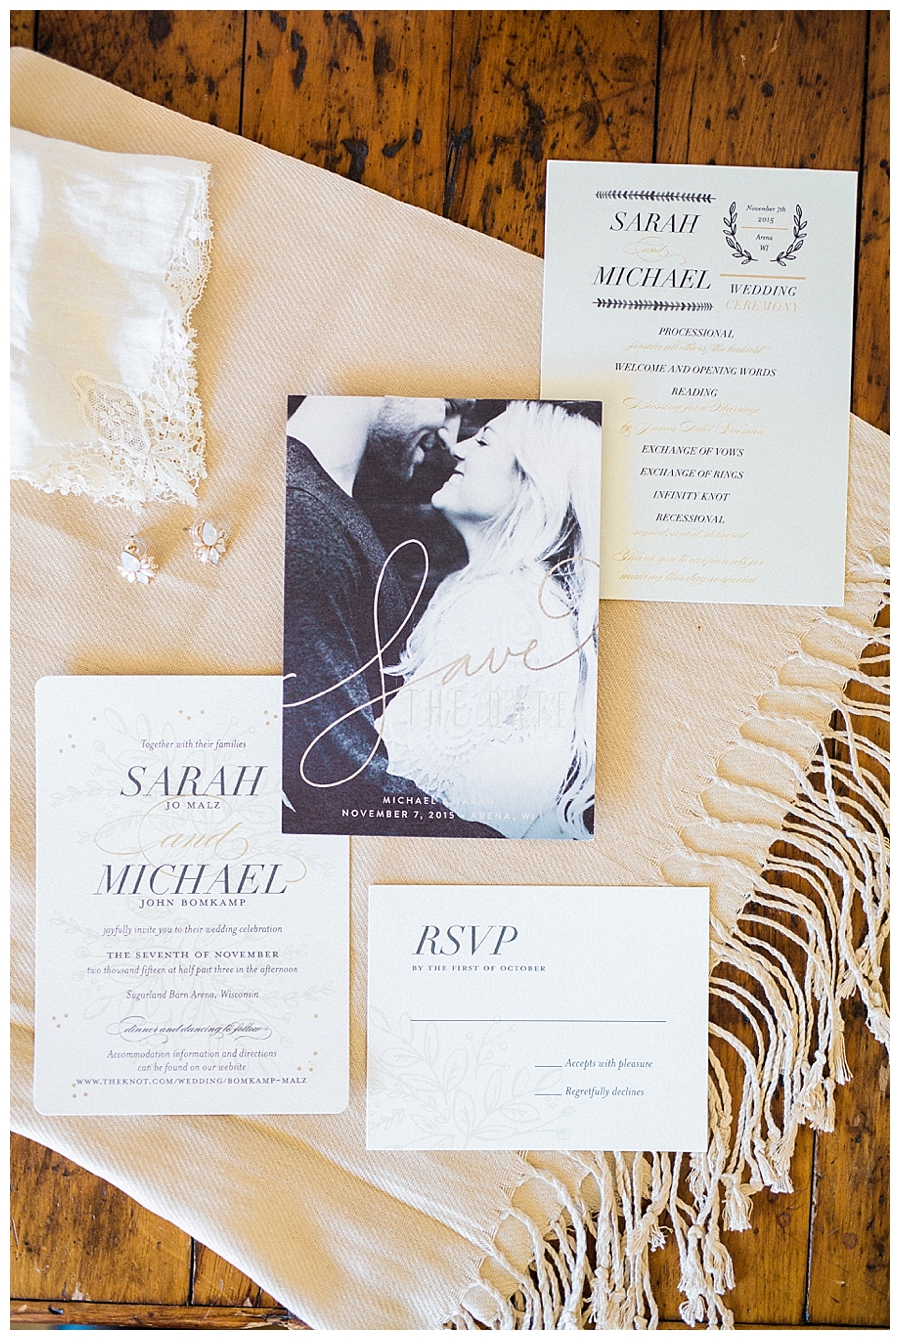 wedding stationary suite for a rustic outdoor fall wedding